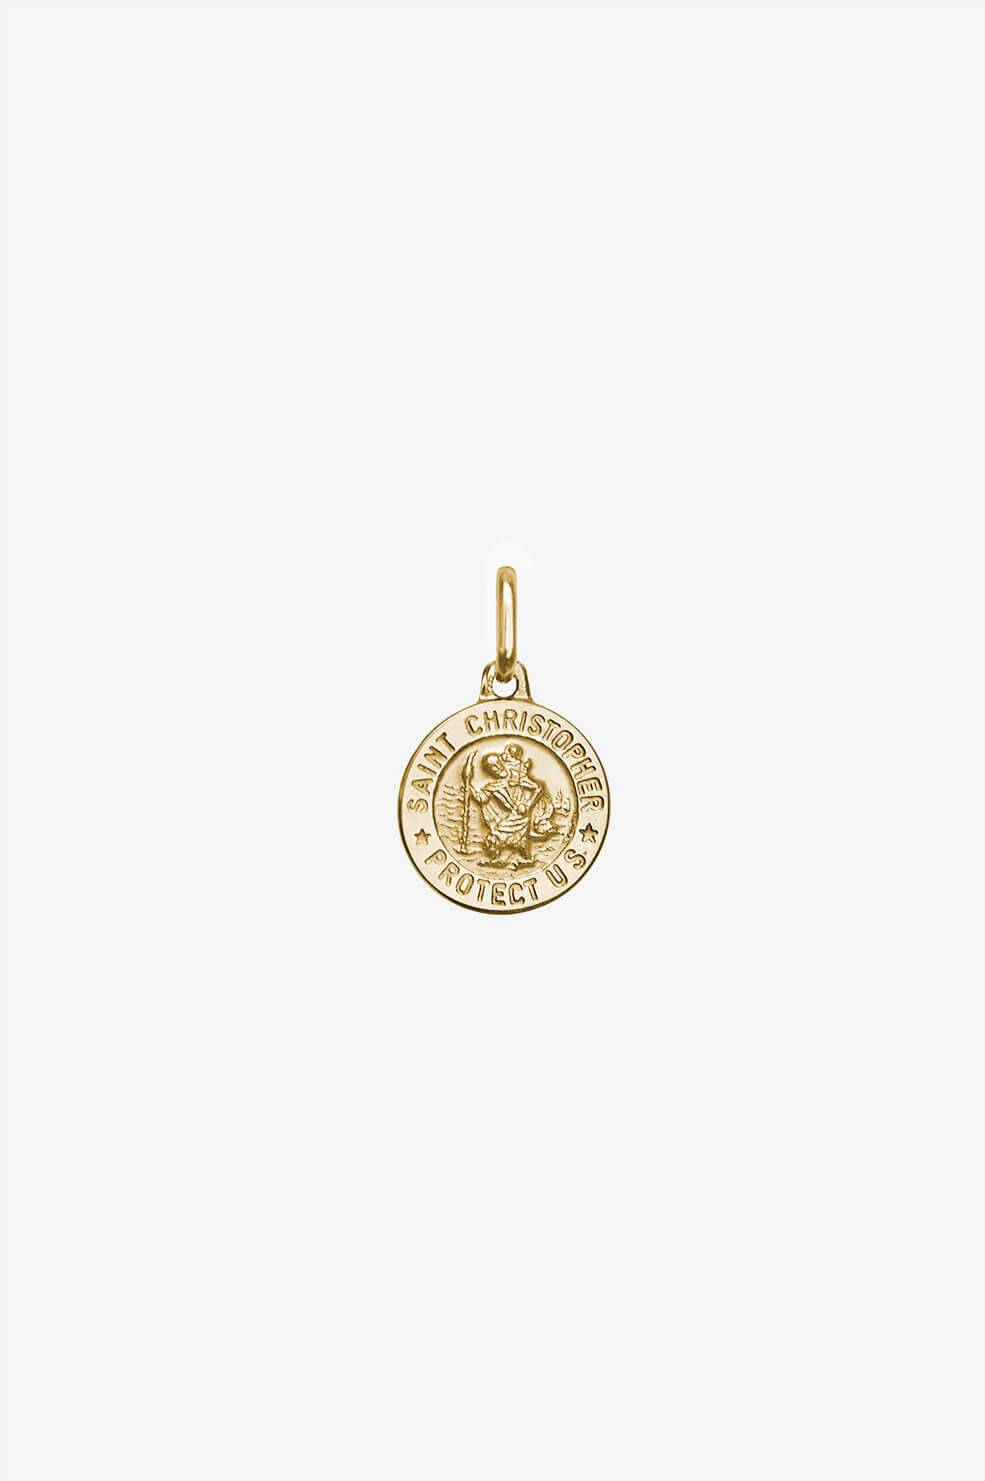 ANINE BING St. Christopher Charm in Gold  - 14k Yellow Gold - Size: One Size